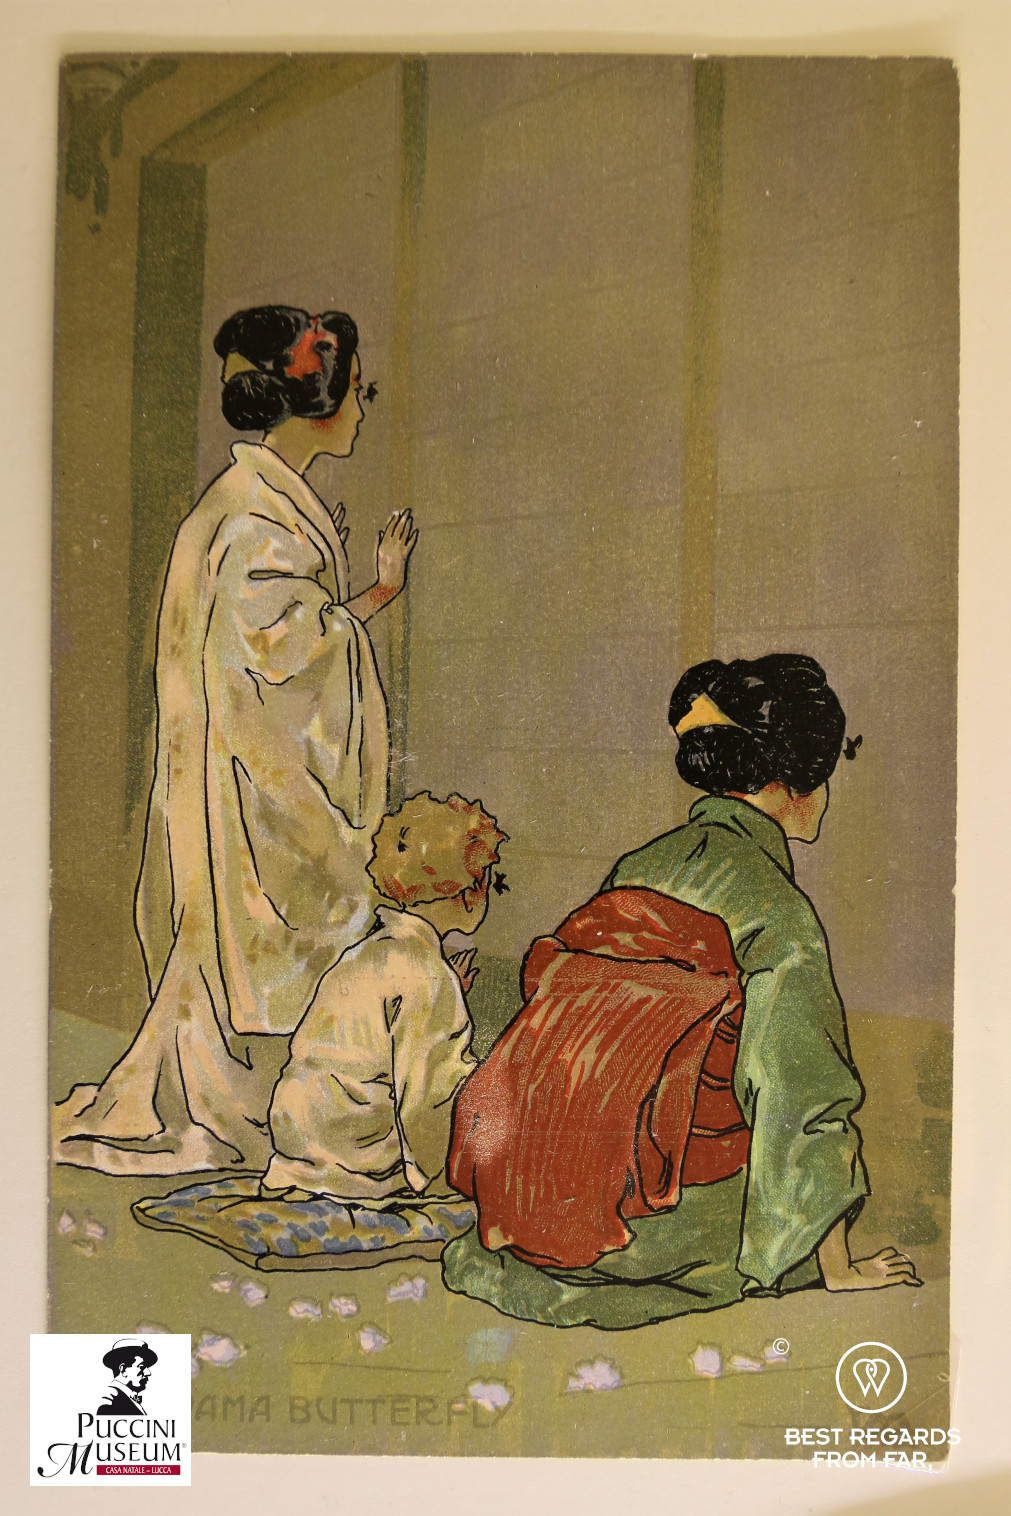 Madam Butterfly drawing, Puccini birth home museum, Lucca, Italy.